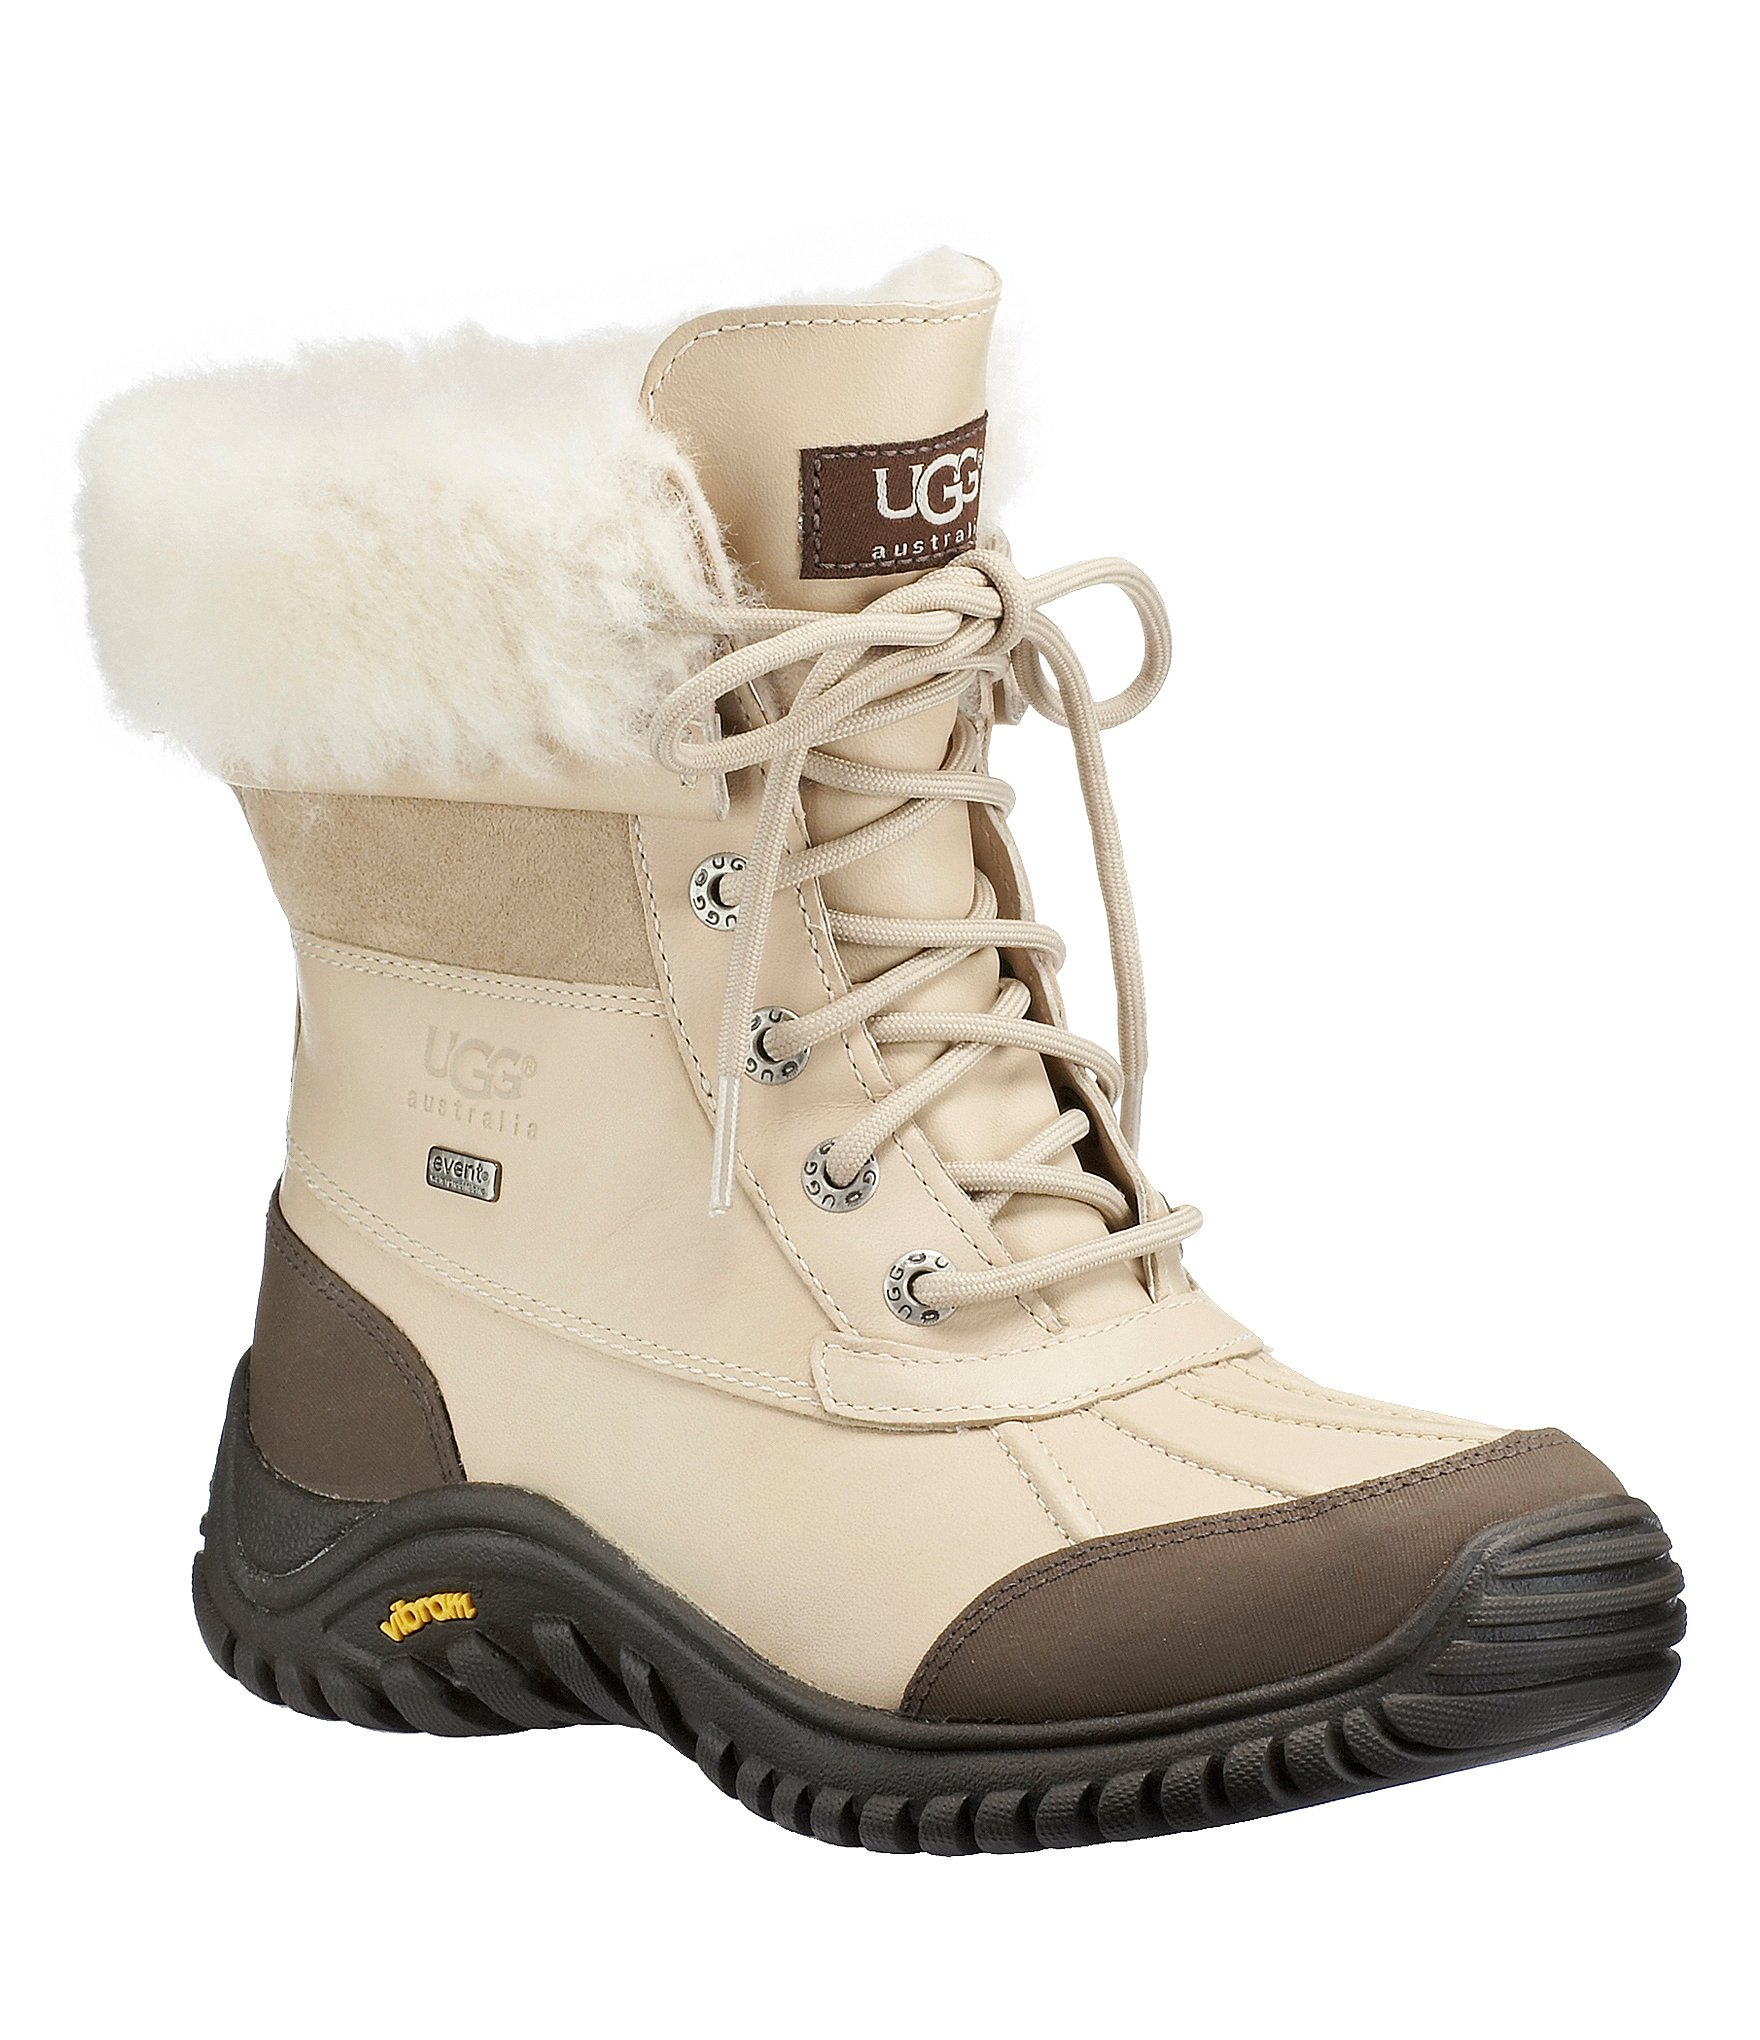 ugg boots in florence sc